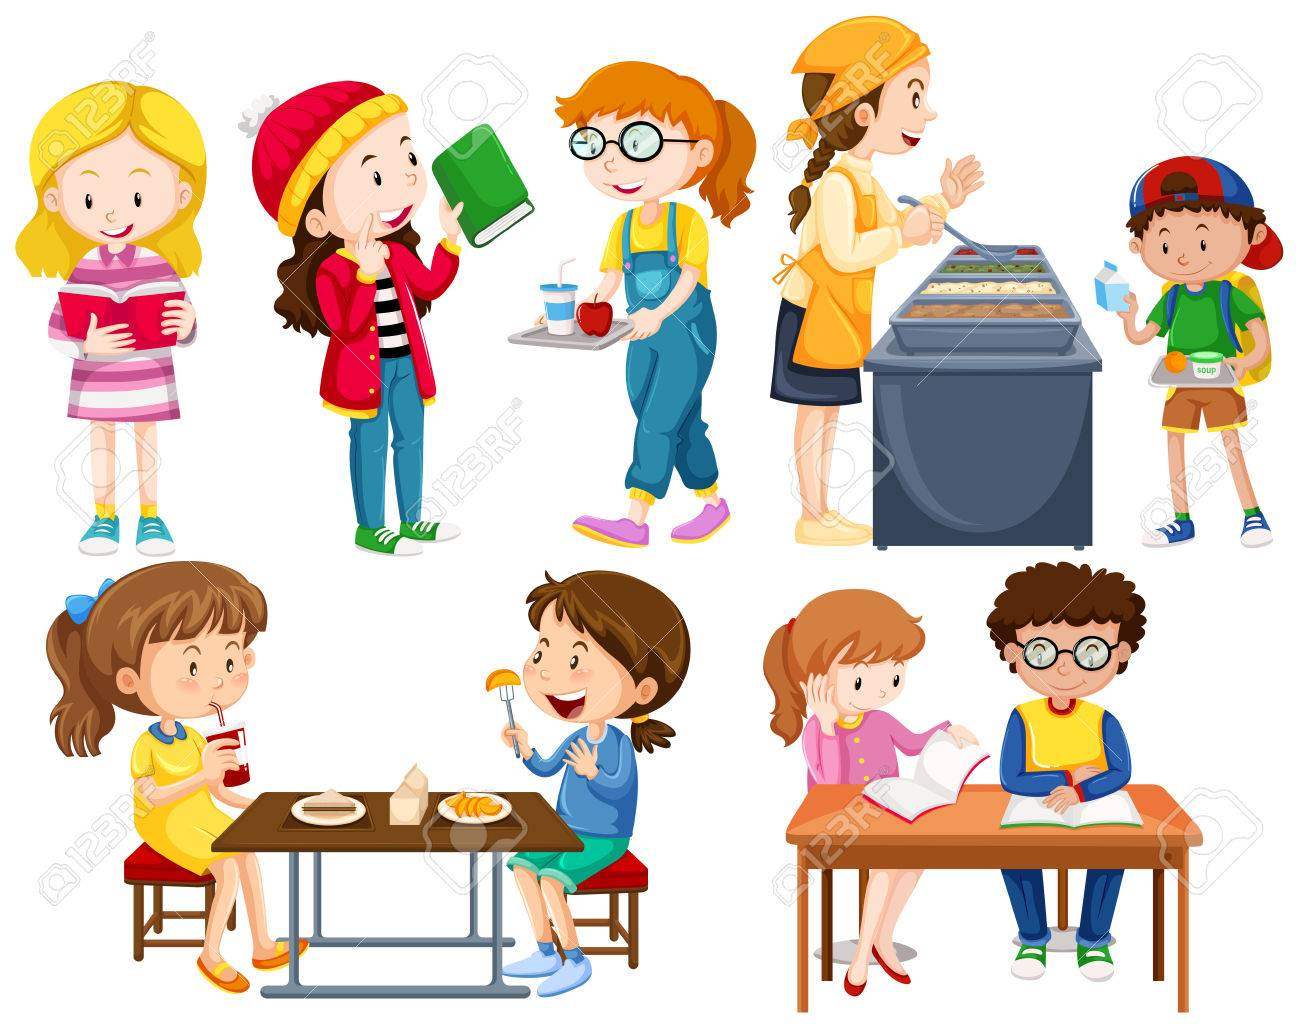 183 school canteen stock vector illustration and royalty free school